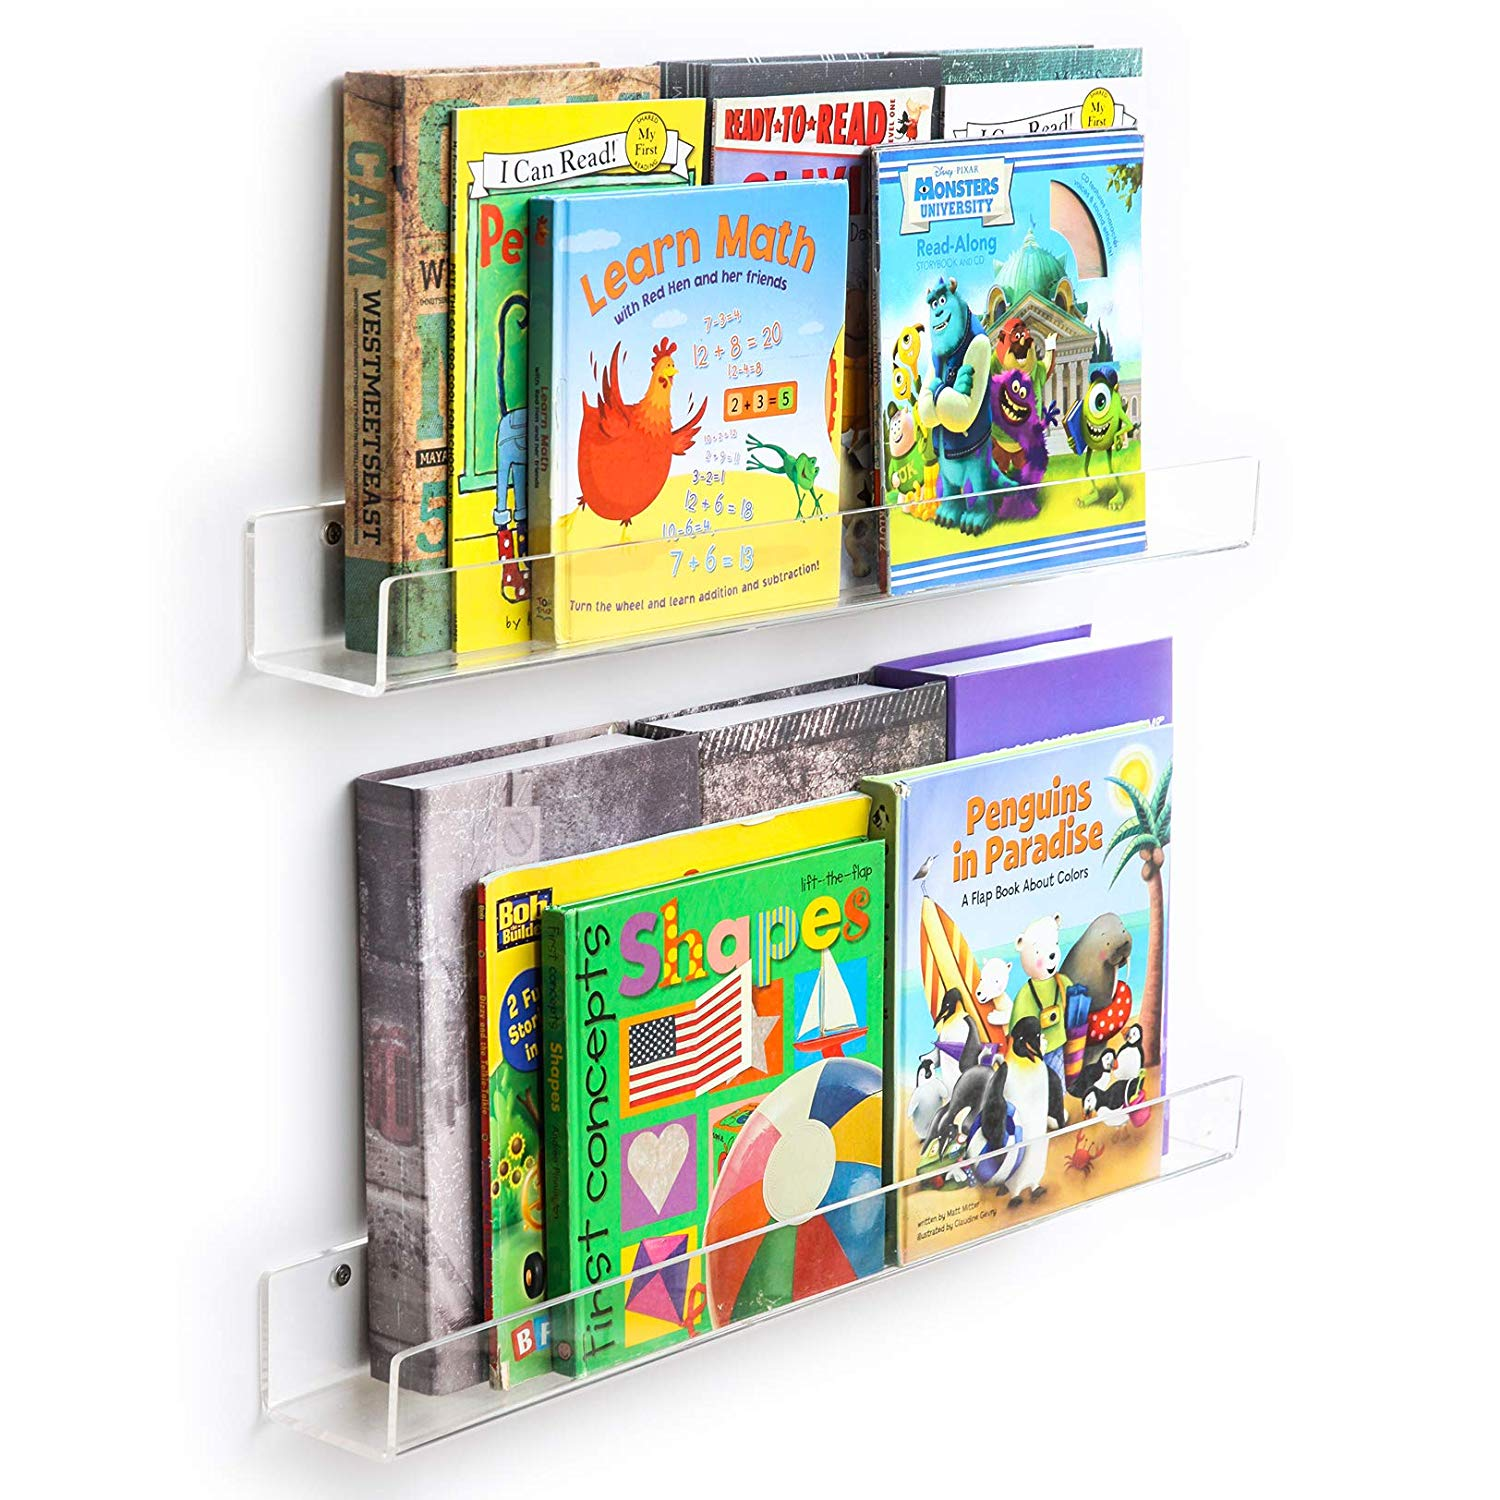 Acrylic Invisible Floating Bookshelf Display 24 inch, 2 Pack